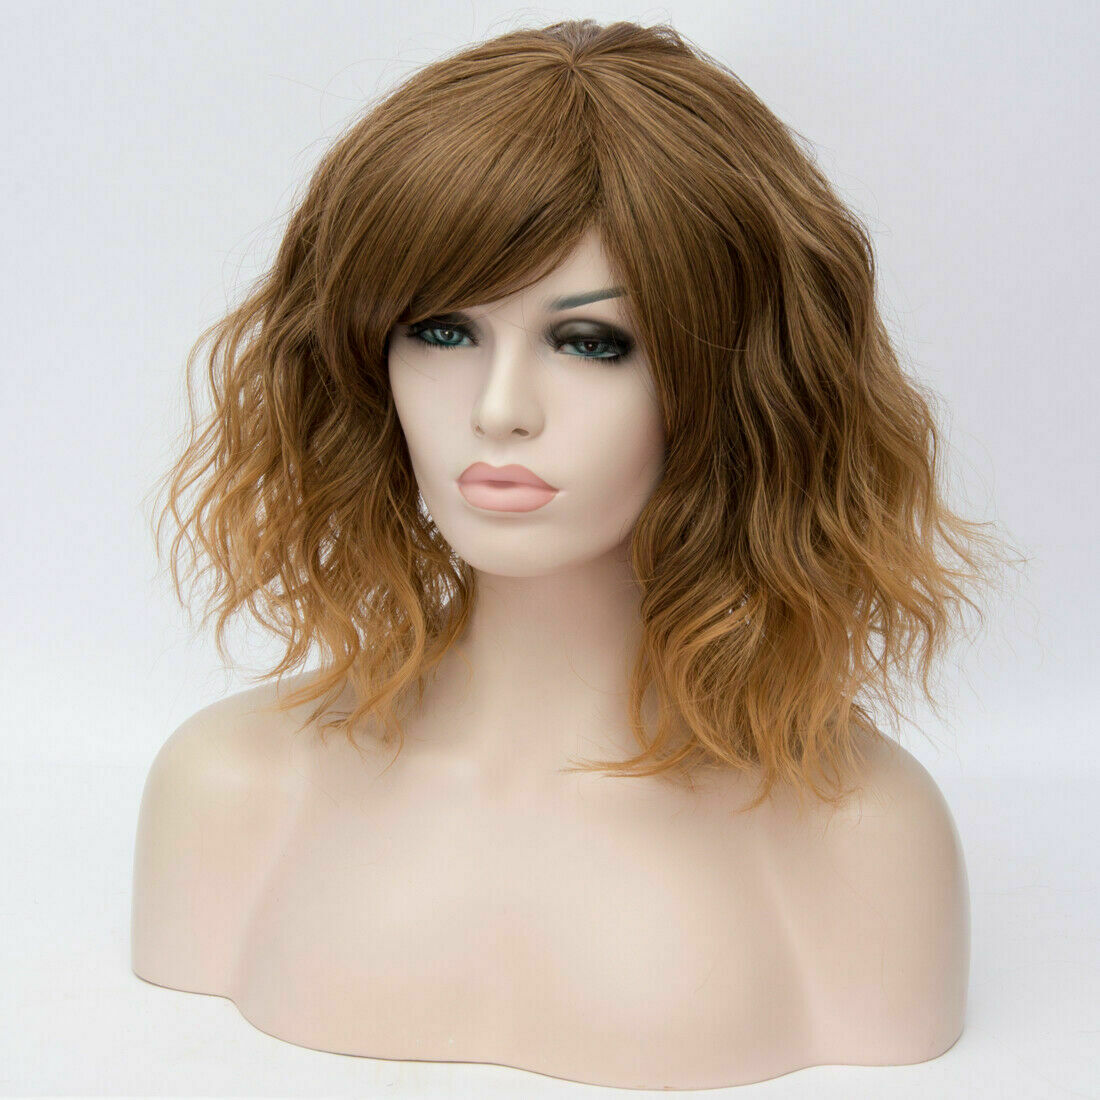 Lolita-Women-039-s-Short-Curly-Anime-Synthetic-Hair-Heat-Resistant-Cosplay-Party-Wig miniature 20